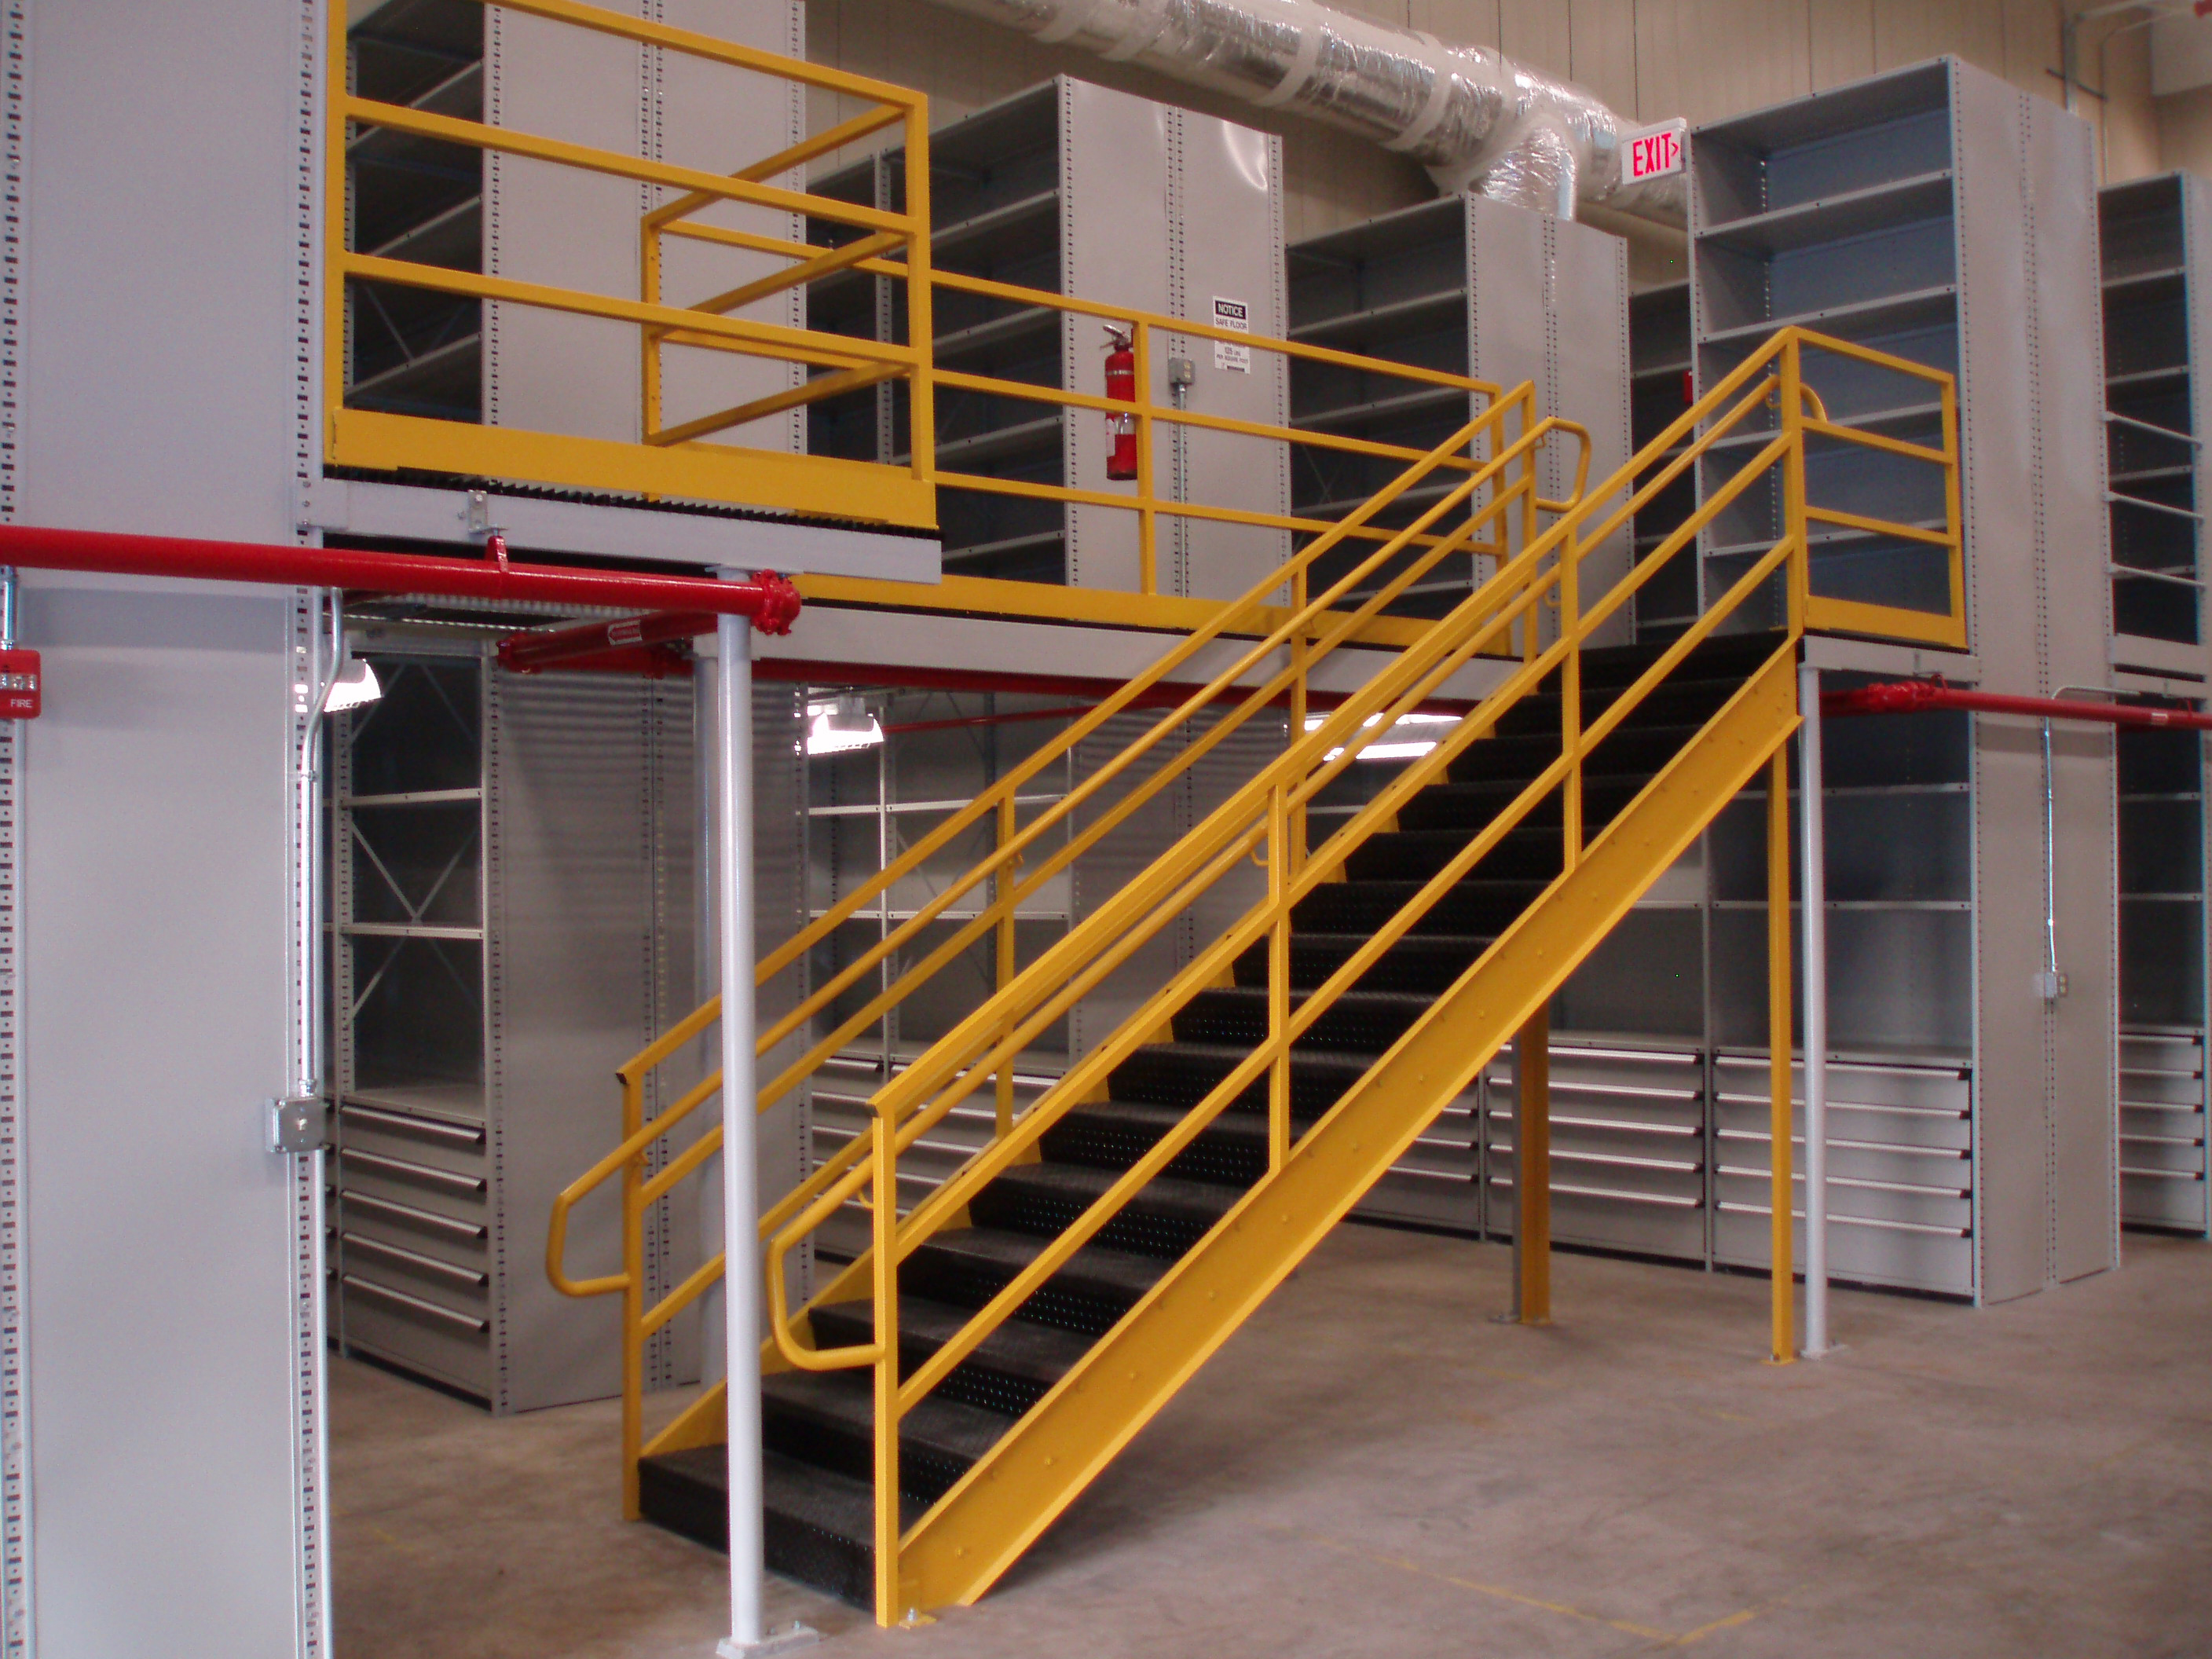 Tyler Supply Industrial steel work platforms (mezzanines) are your best solution to fully utilize existing overhead space